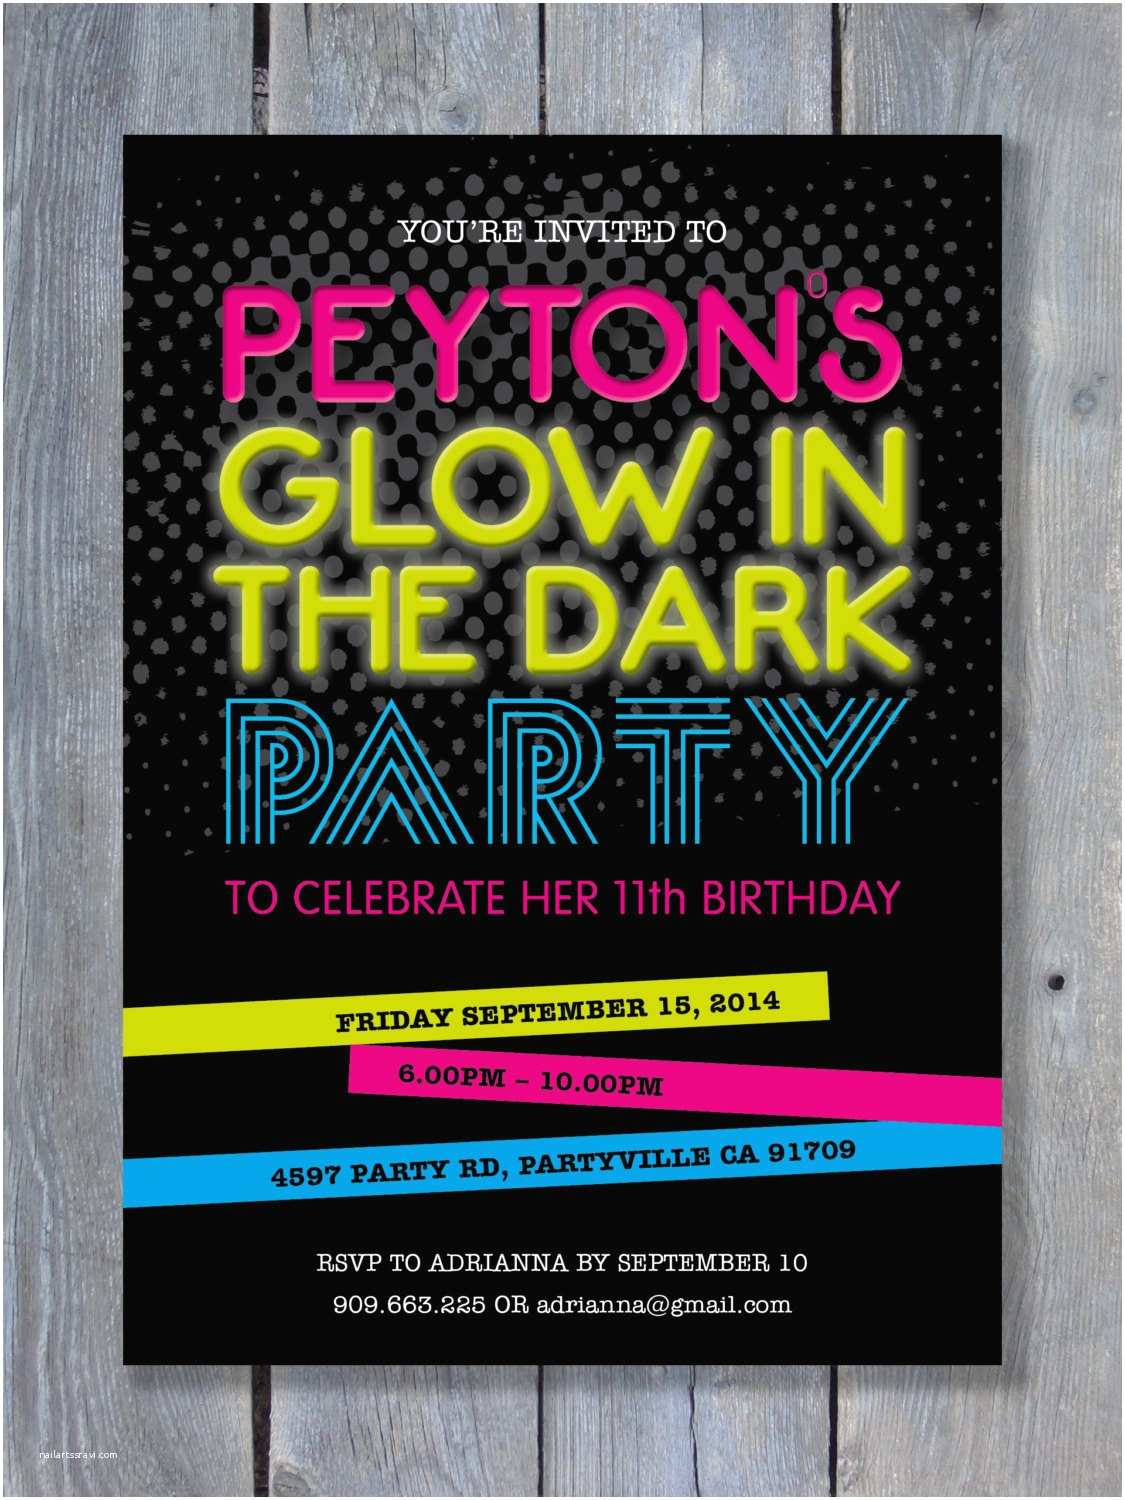 Glow In the Dark Party Invitations Glow In the Dark Party Invitation for Birthday Black Light